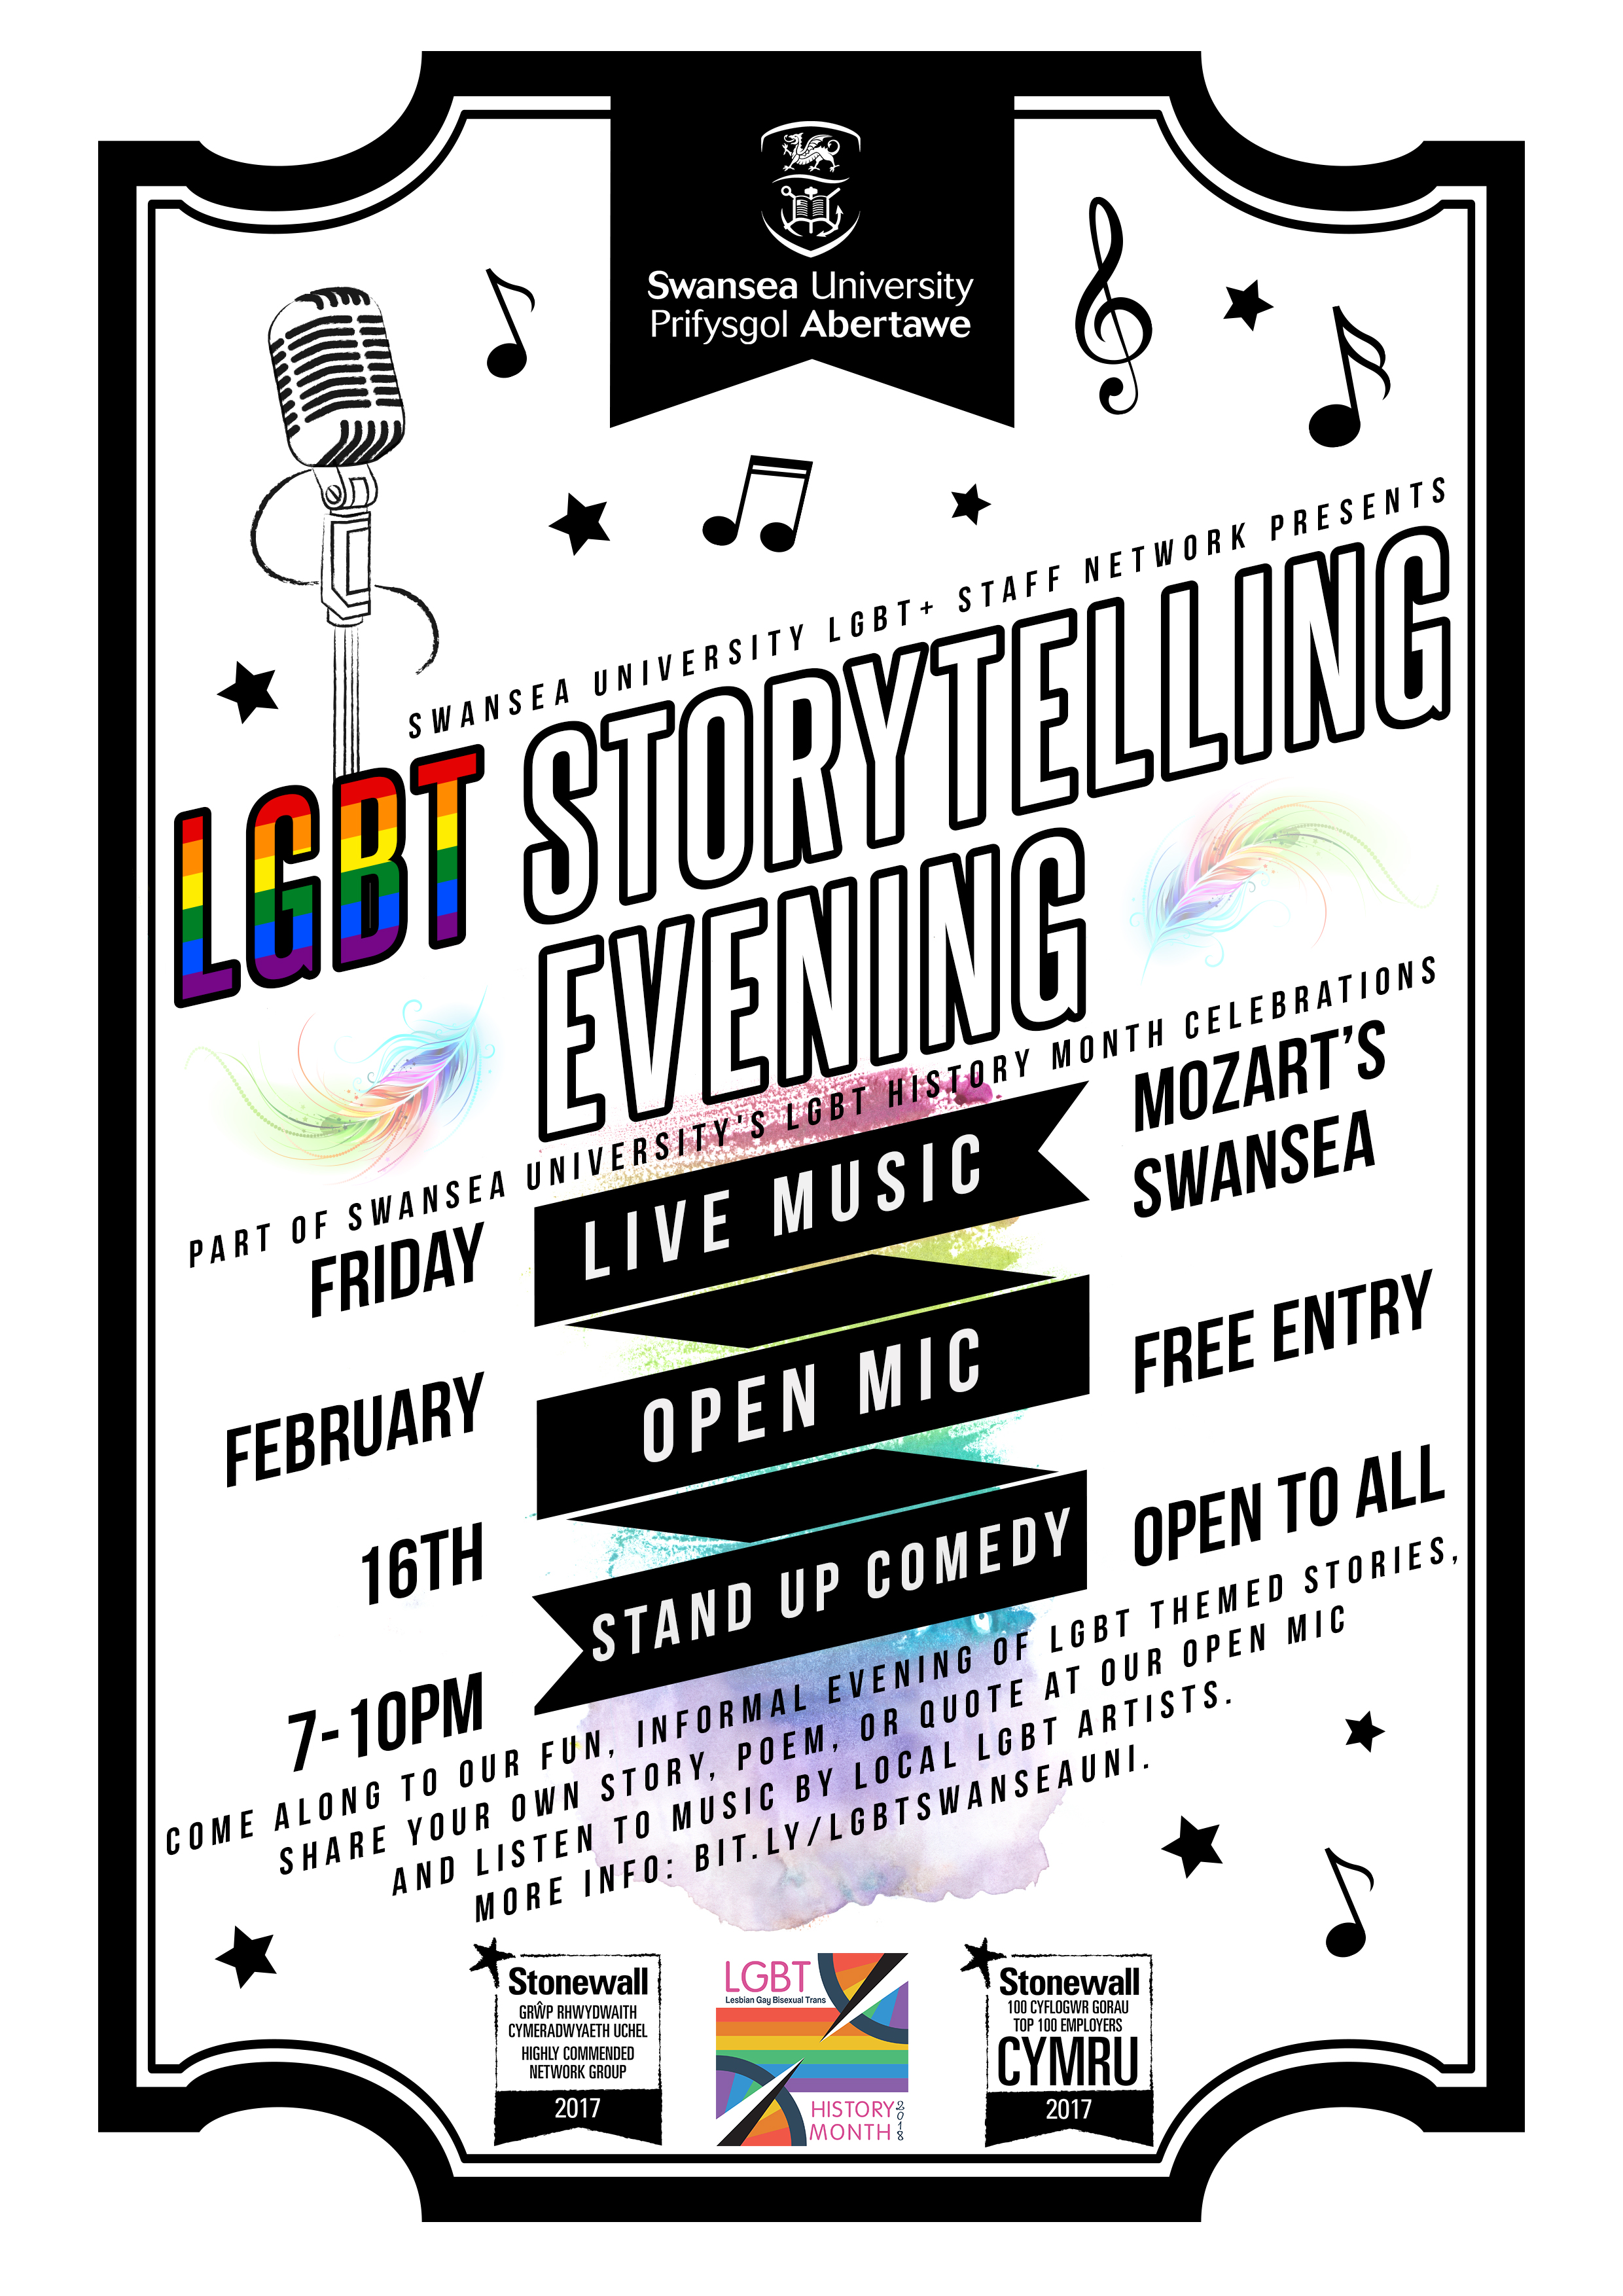 Storytelling event poster